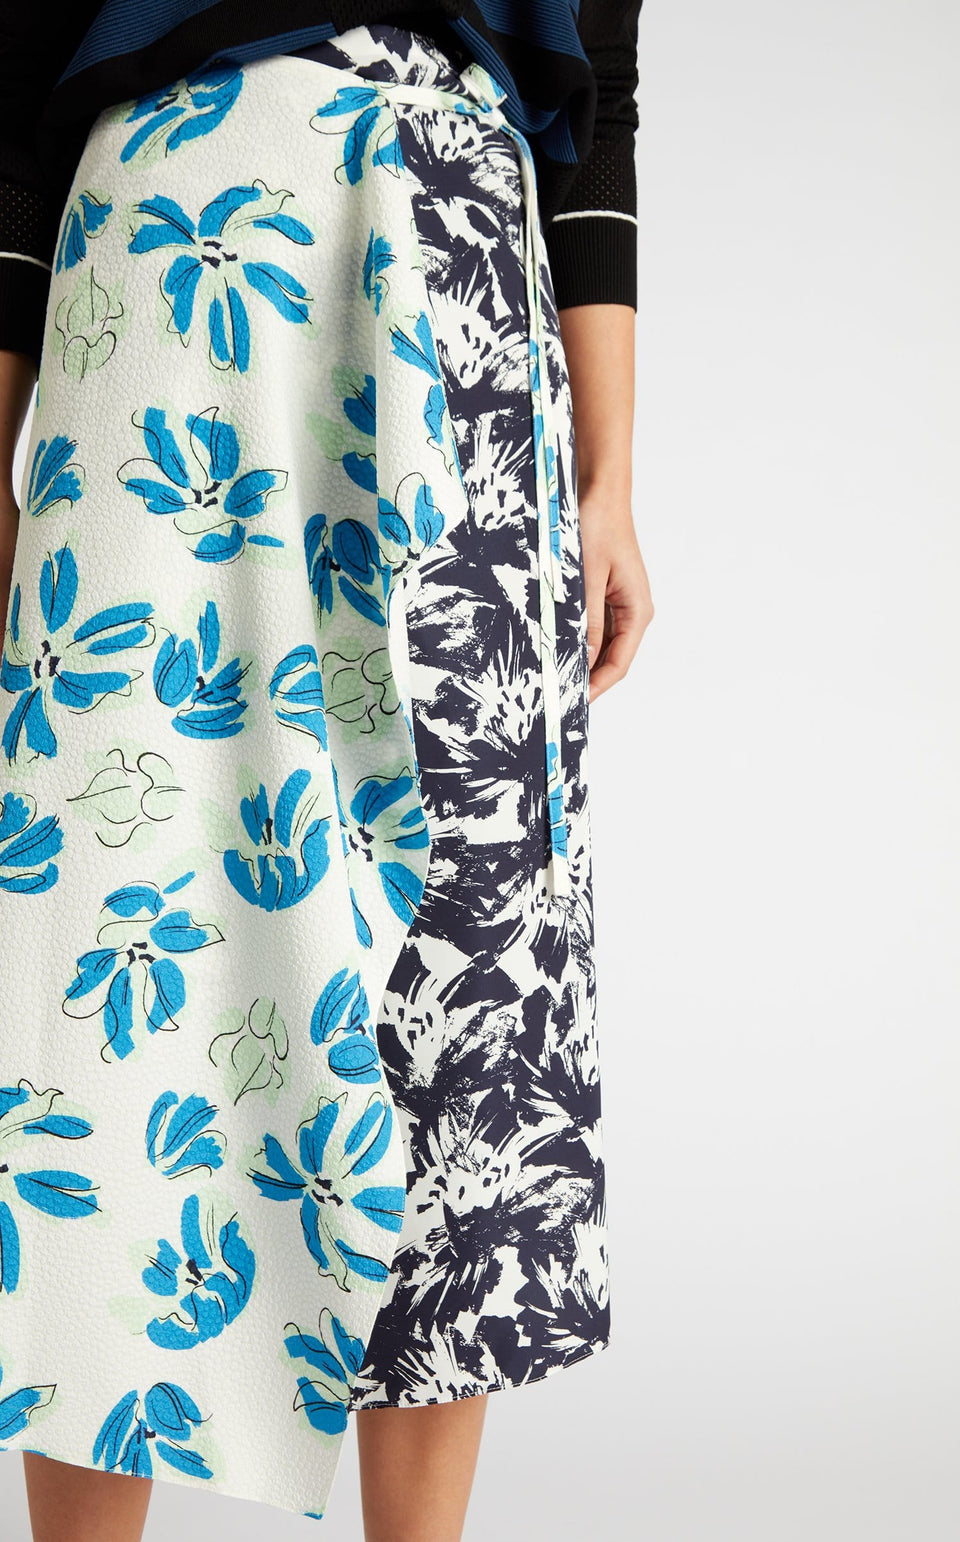 Beymer Skirt In Navy Painterly/Floral from Roland Mouret